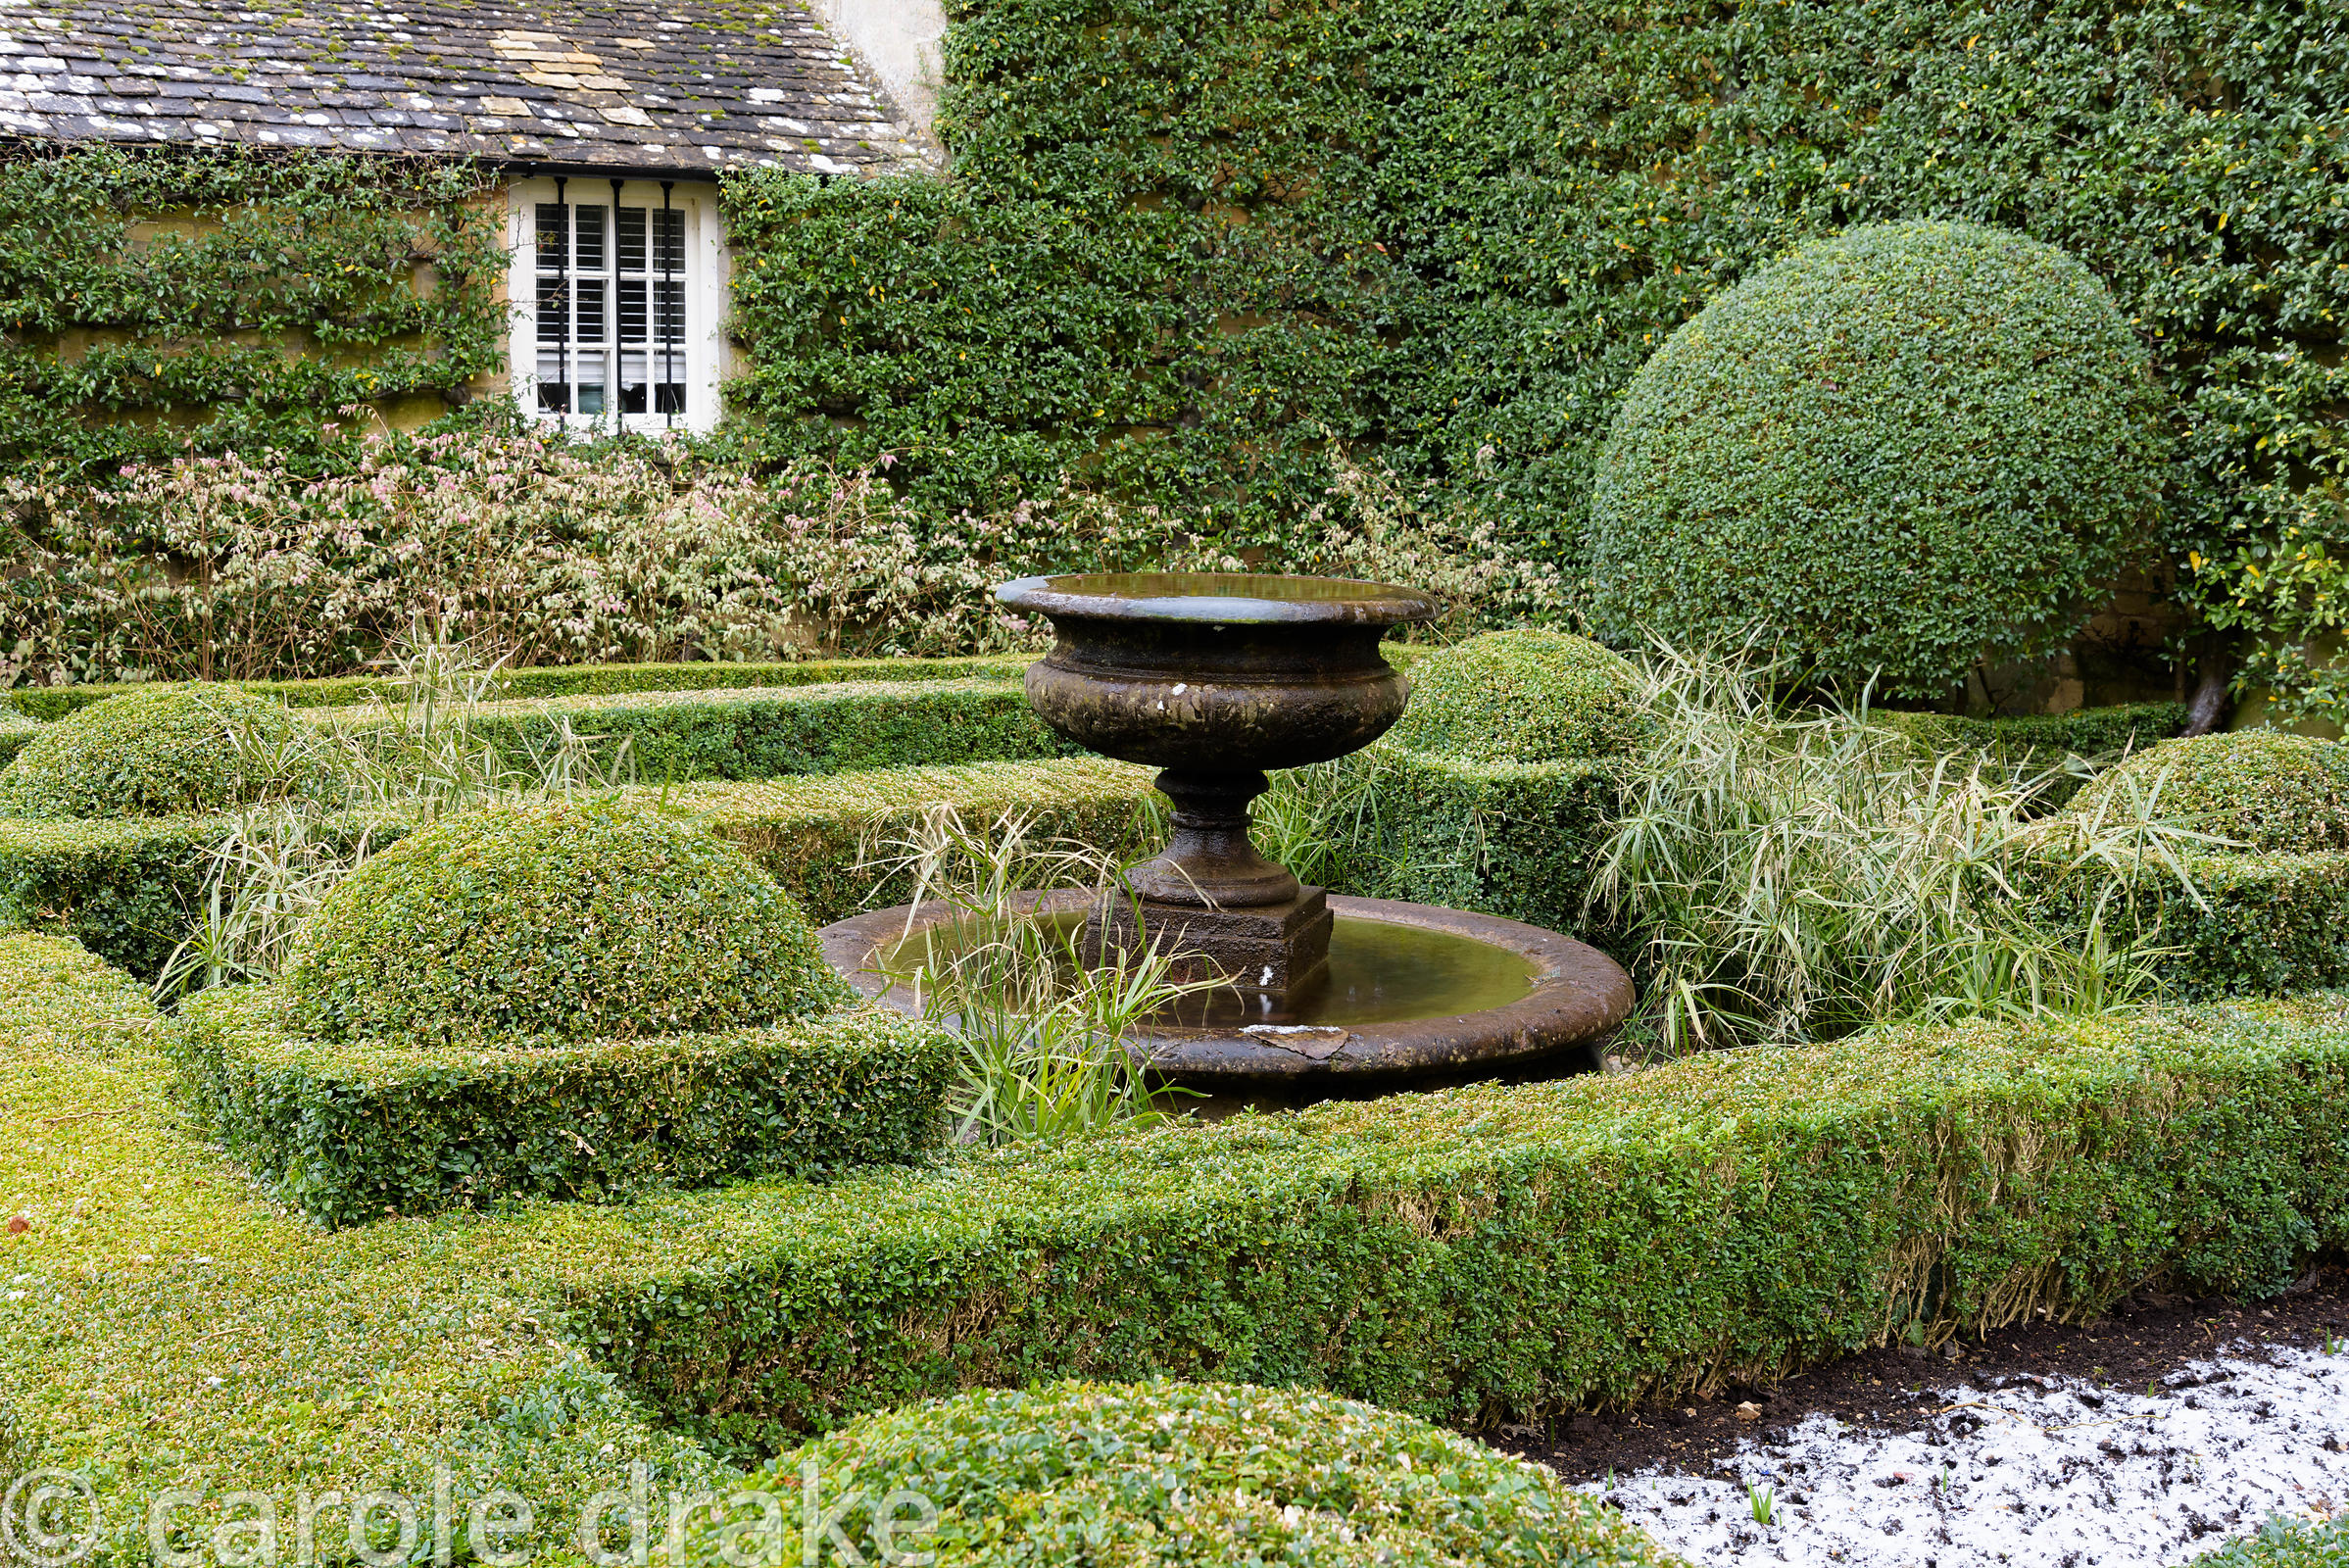 The Fountain Court with a central water feature set inside box-edged beds, framed by clipped box, Fuchsia magellanica 'Varieg...